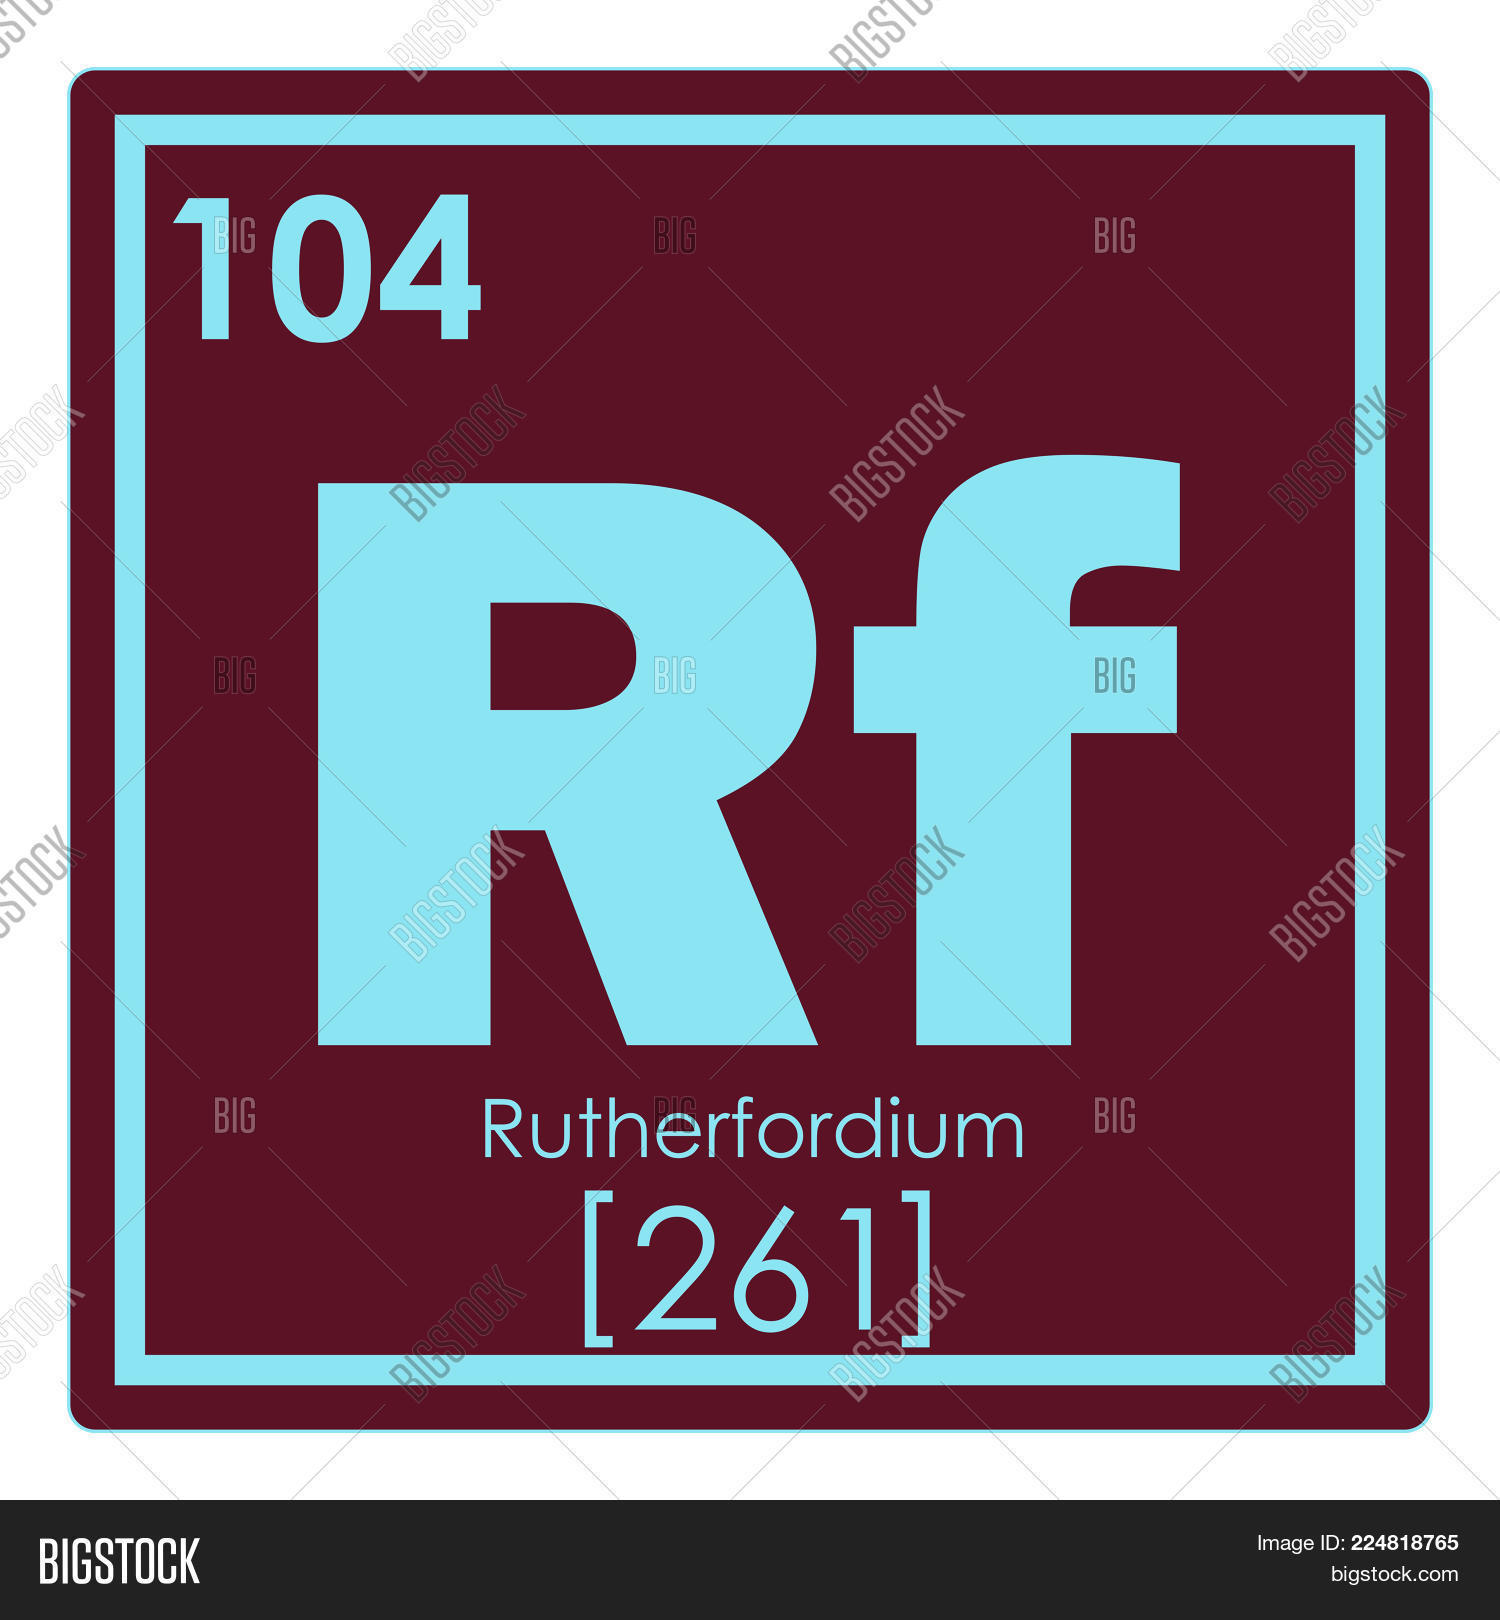 Rutherfordium chemical image photo free trial bigstock rutherfordium chemical element periodic table science symbol urtaz Image collections